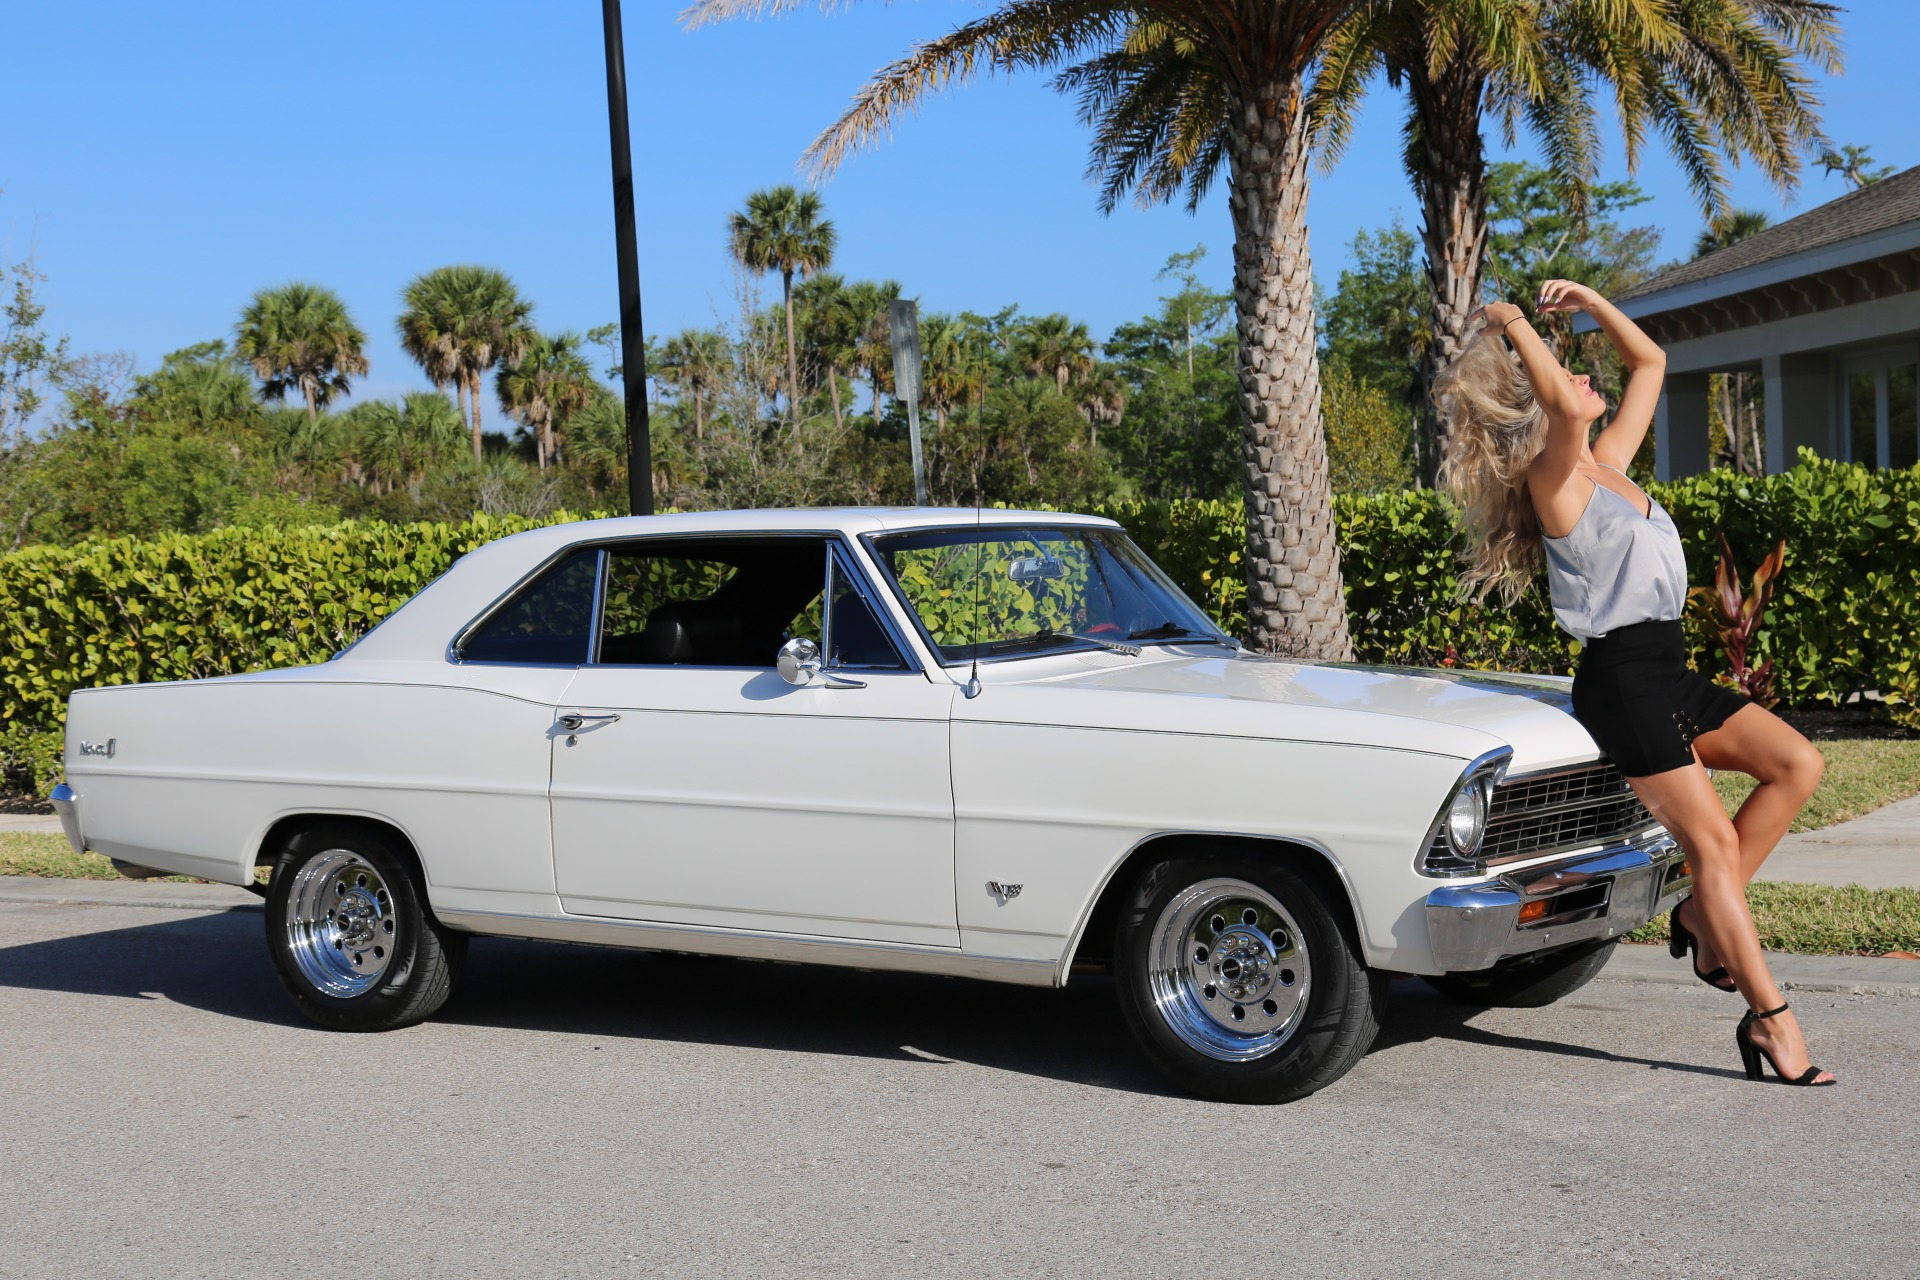 Used 1967 Chvey Nova Muscle Car For Sale ($28,000) | Muscle Cars for Sale  Inc. Stock #2005